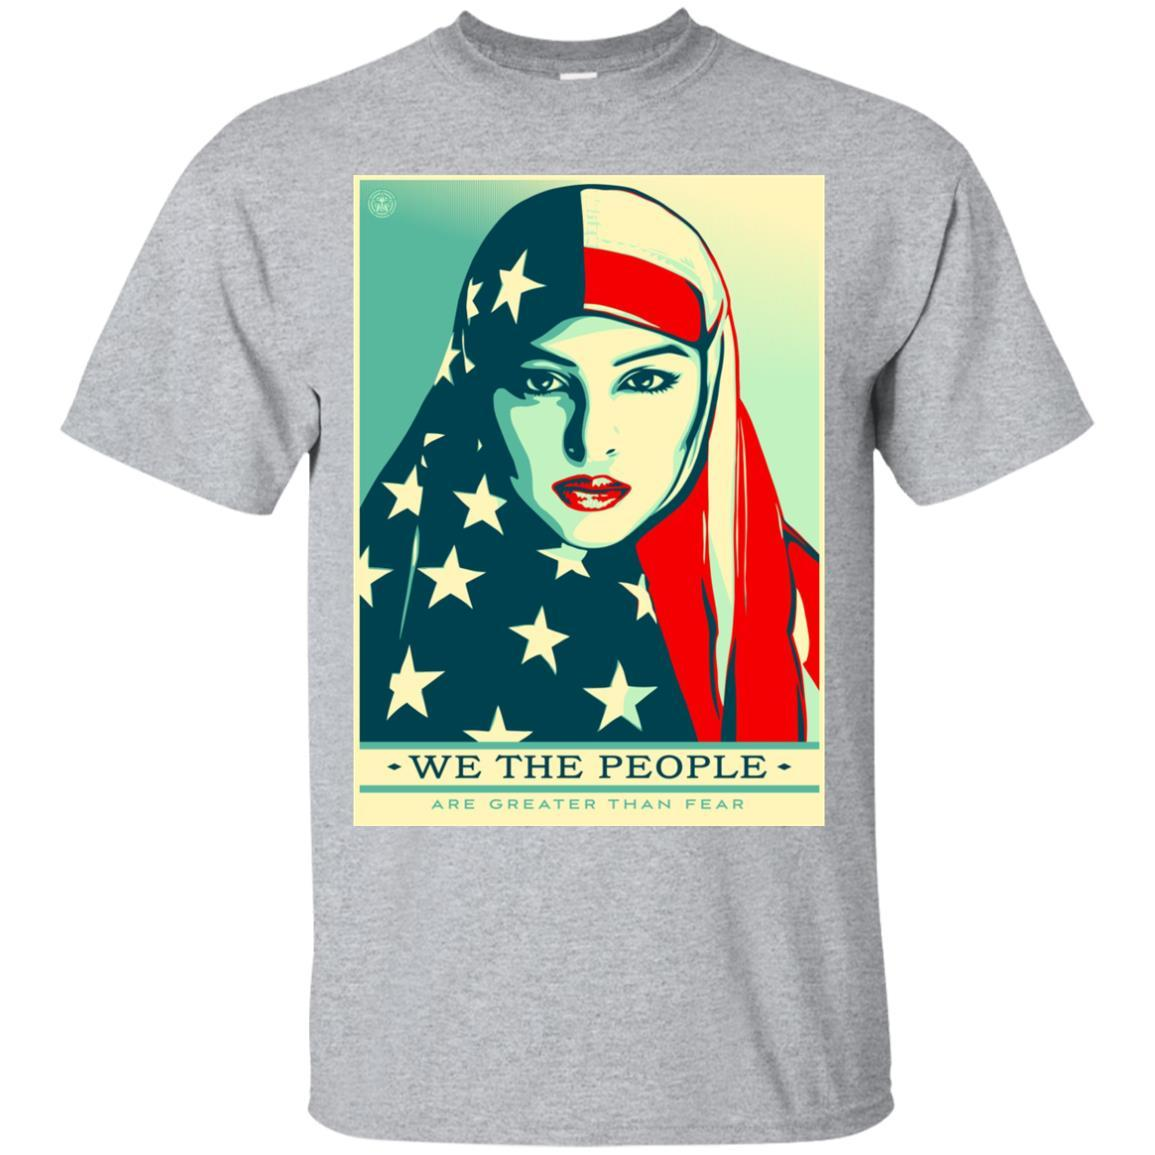 We The People Are Greater Than Fear T-Shirt Style / Color / Size